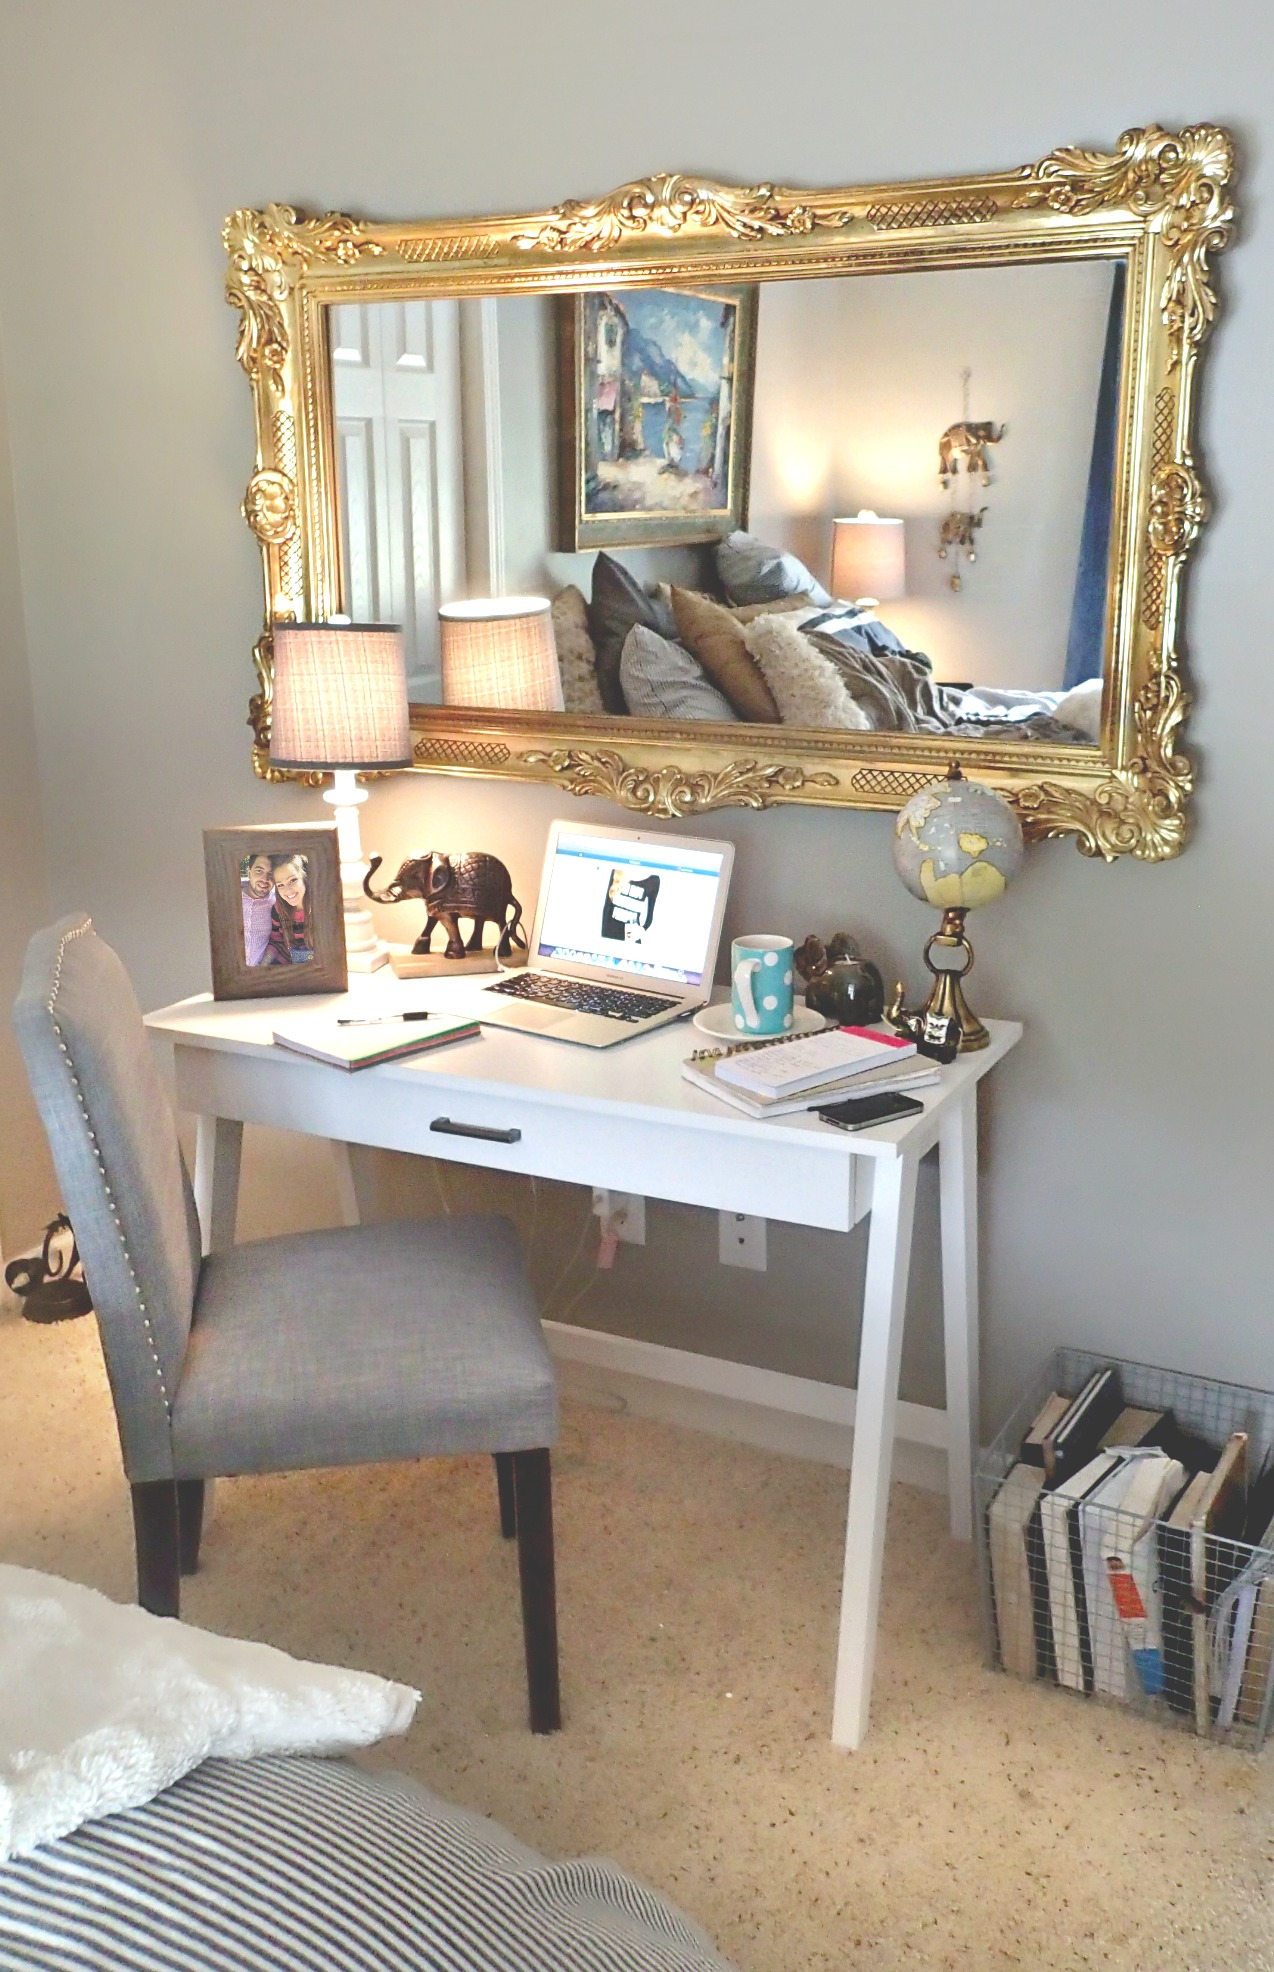 Room Decor: New Little Work Space